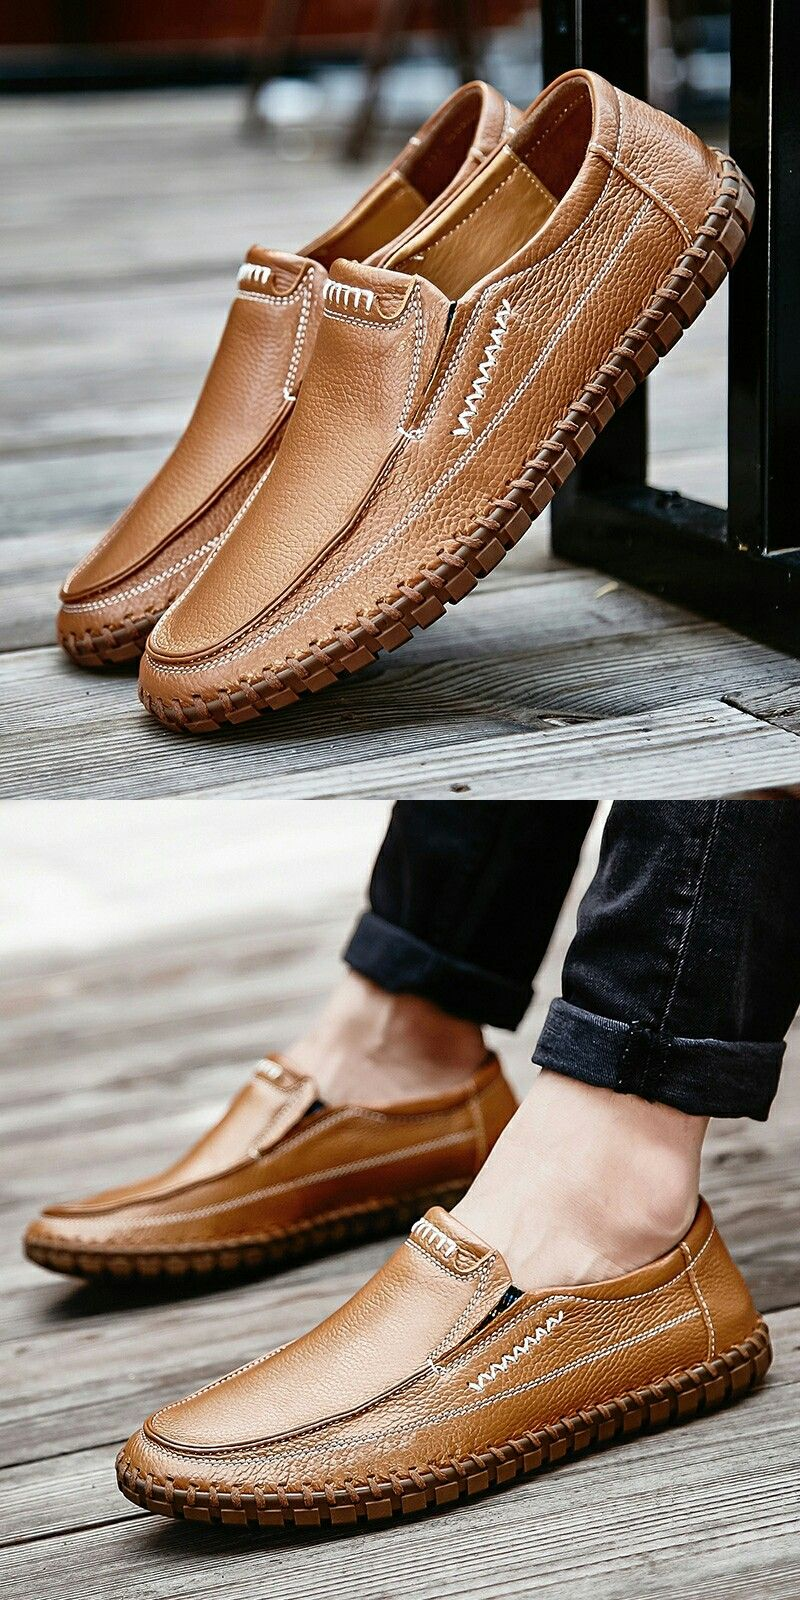 d2bd43284035f Amazon Handmade Summer Men's Leather Shoes Casual Slip On Driving Loafers  Stitching Shoes